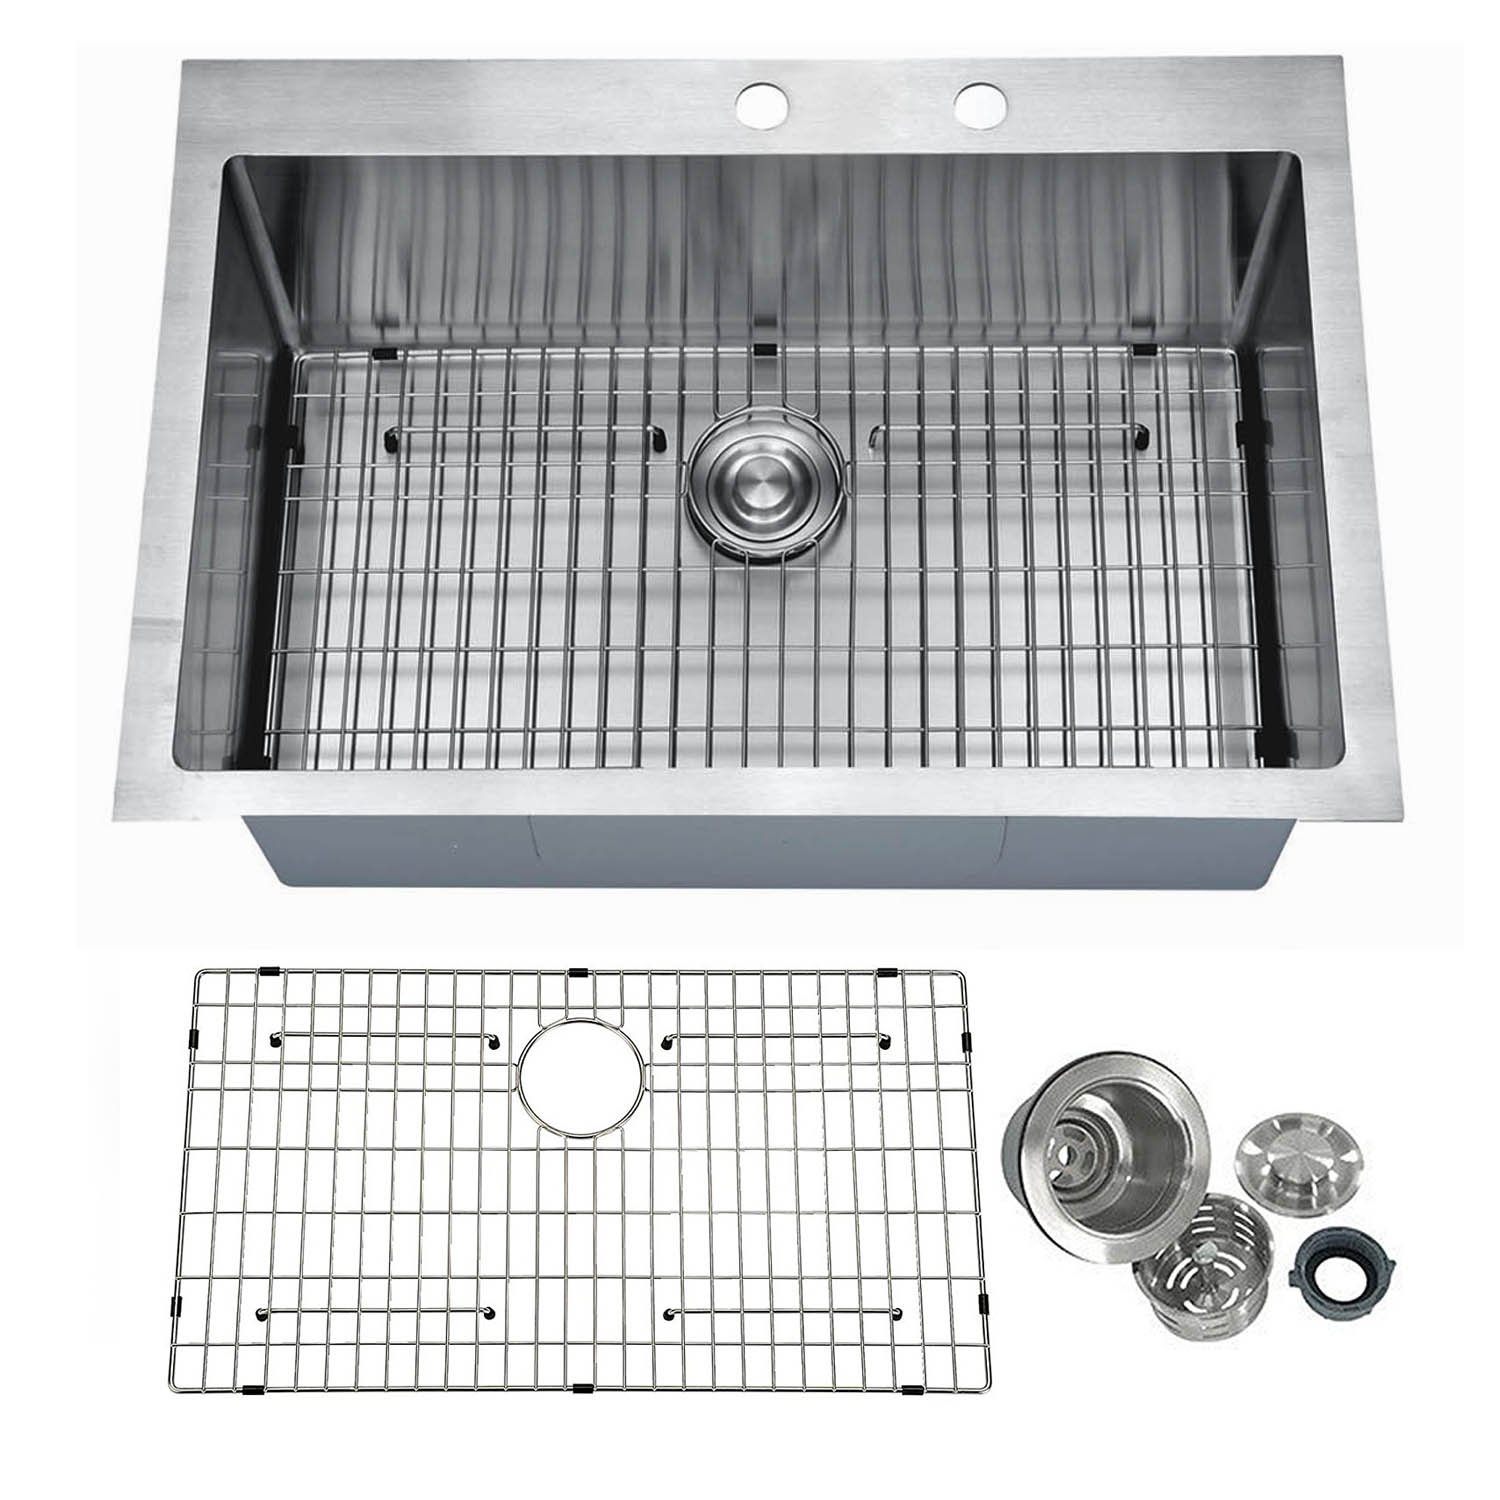 """PRIMART PHT3322S 33 Inch Handcrafted 16 Gauge 10"""" Deep Single Basin Stainless Steel Top mount Drop in Kitchen Sink With 2 Faucet Hole, Bottom Sink Grid & Drainer"""